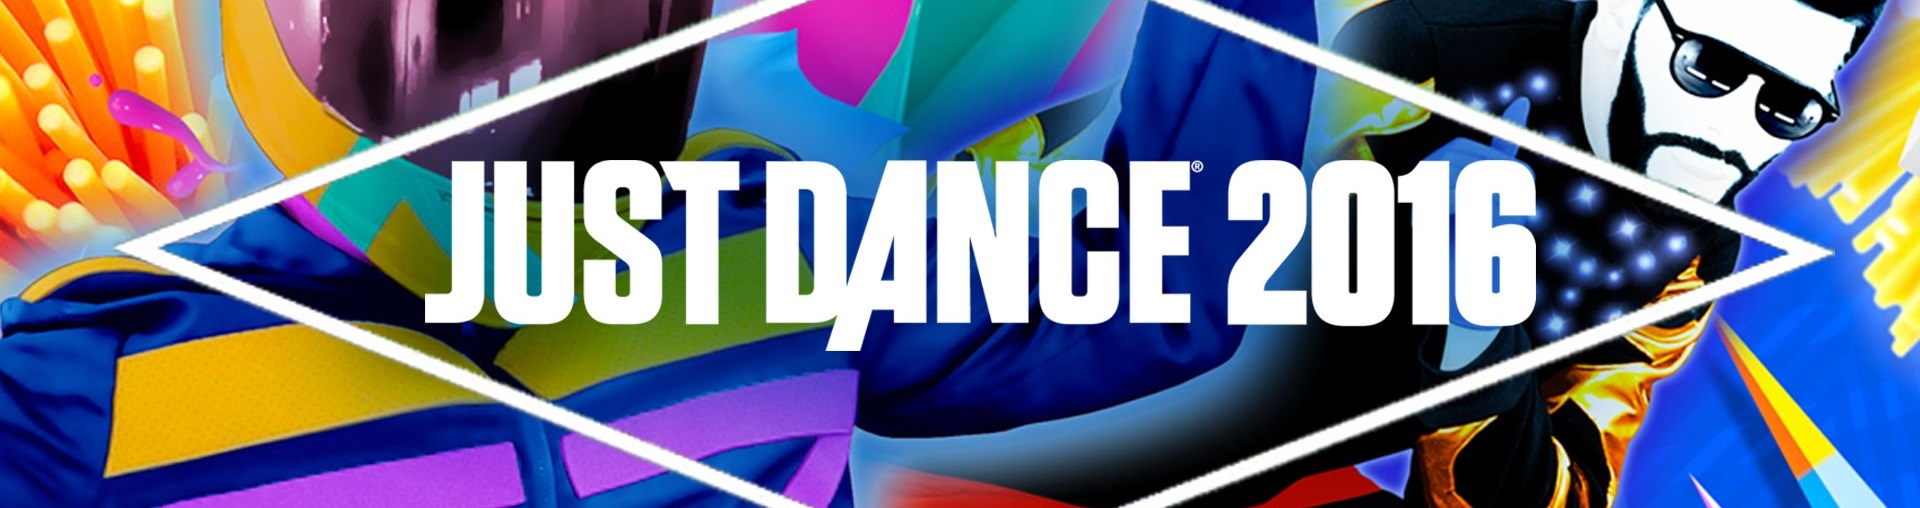 Just Dance 2016 e3 logo